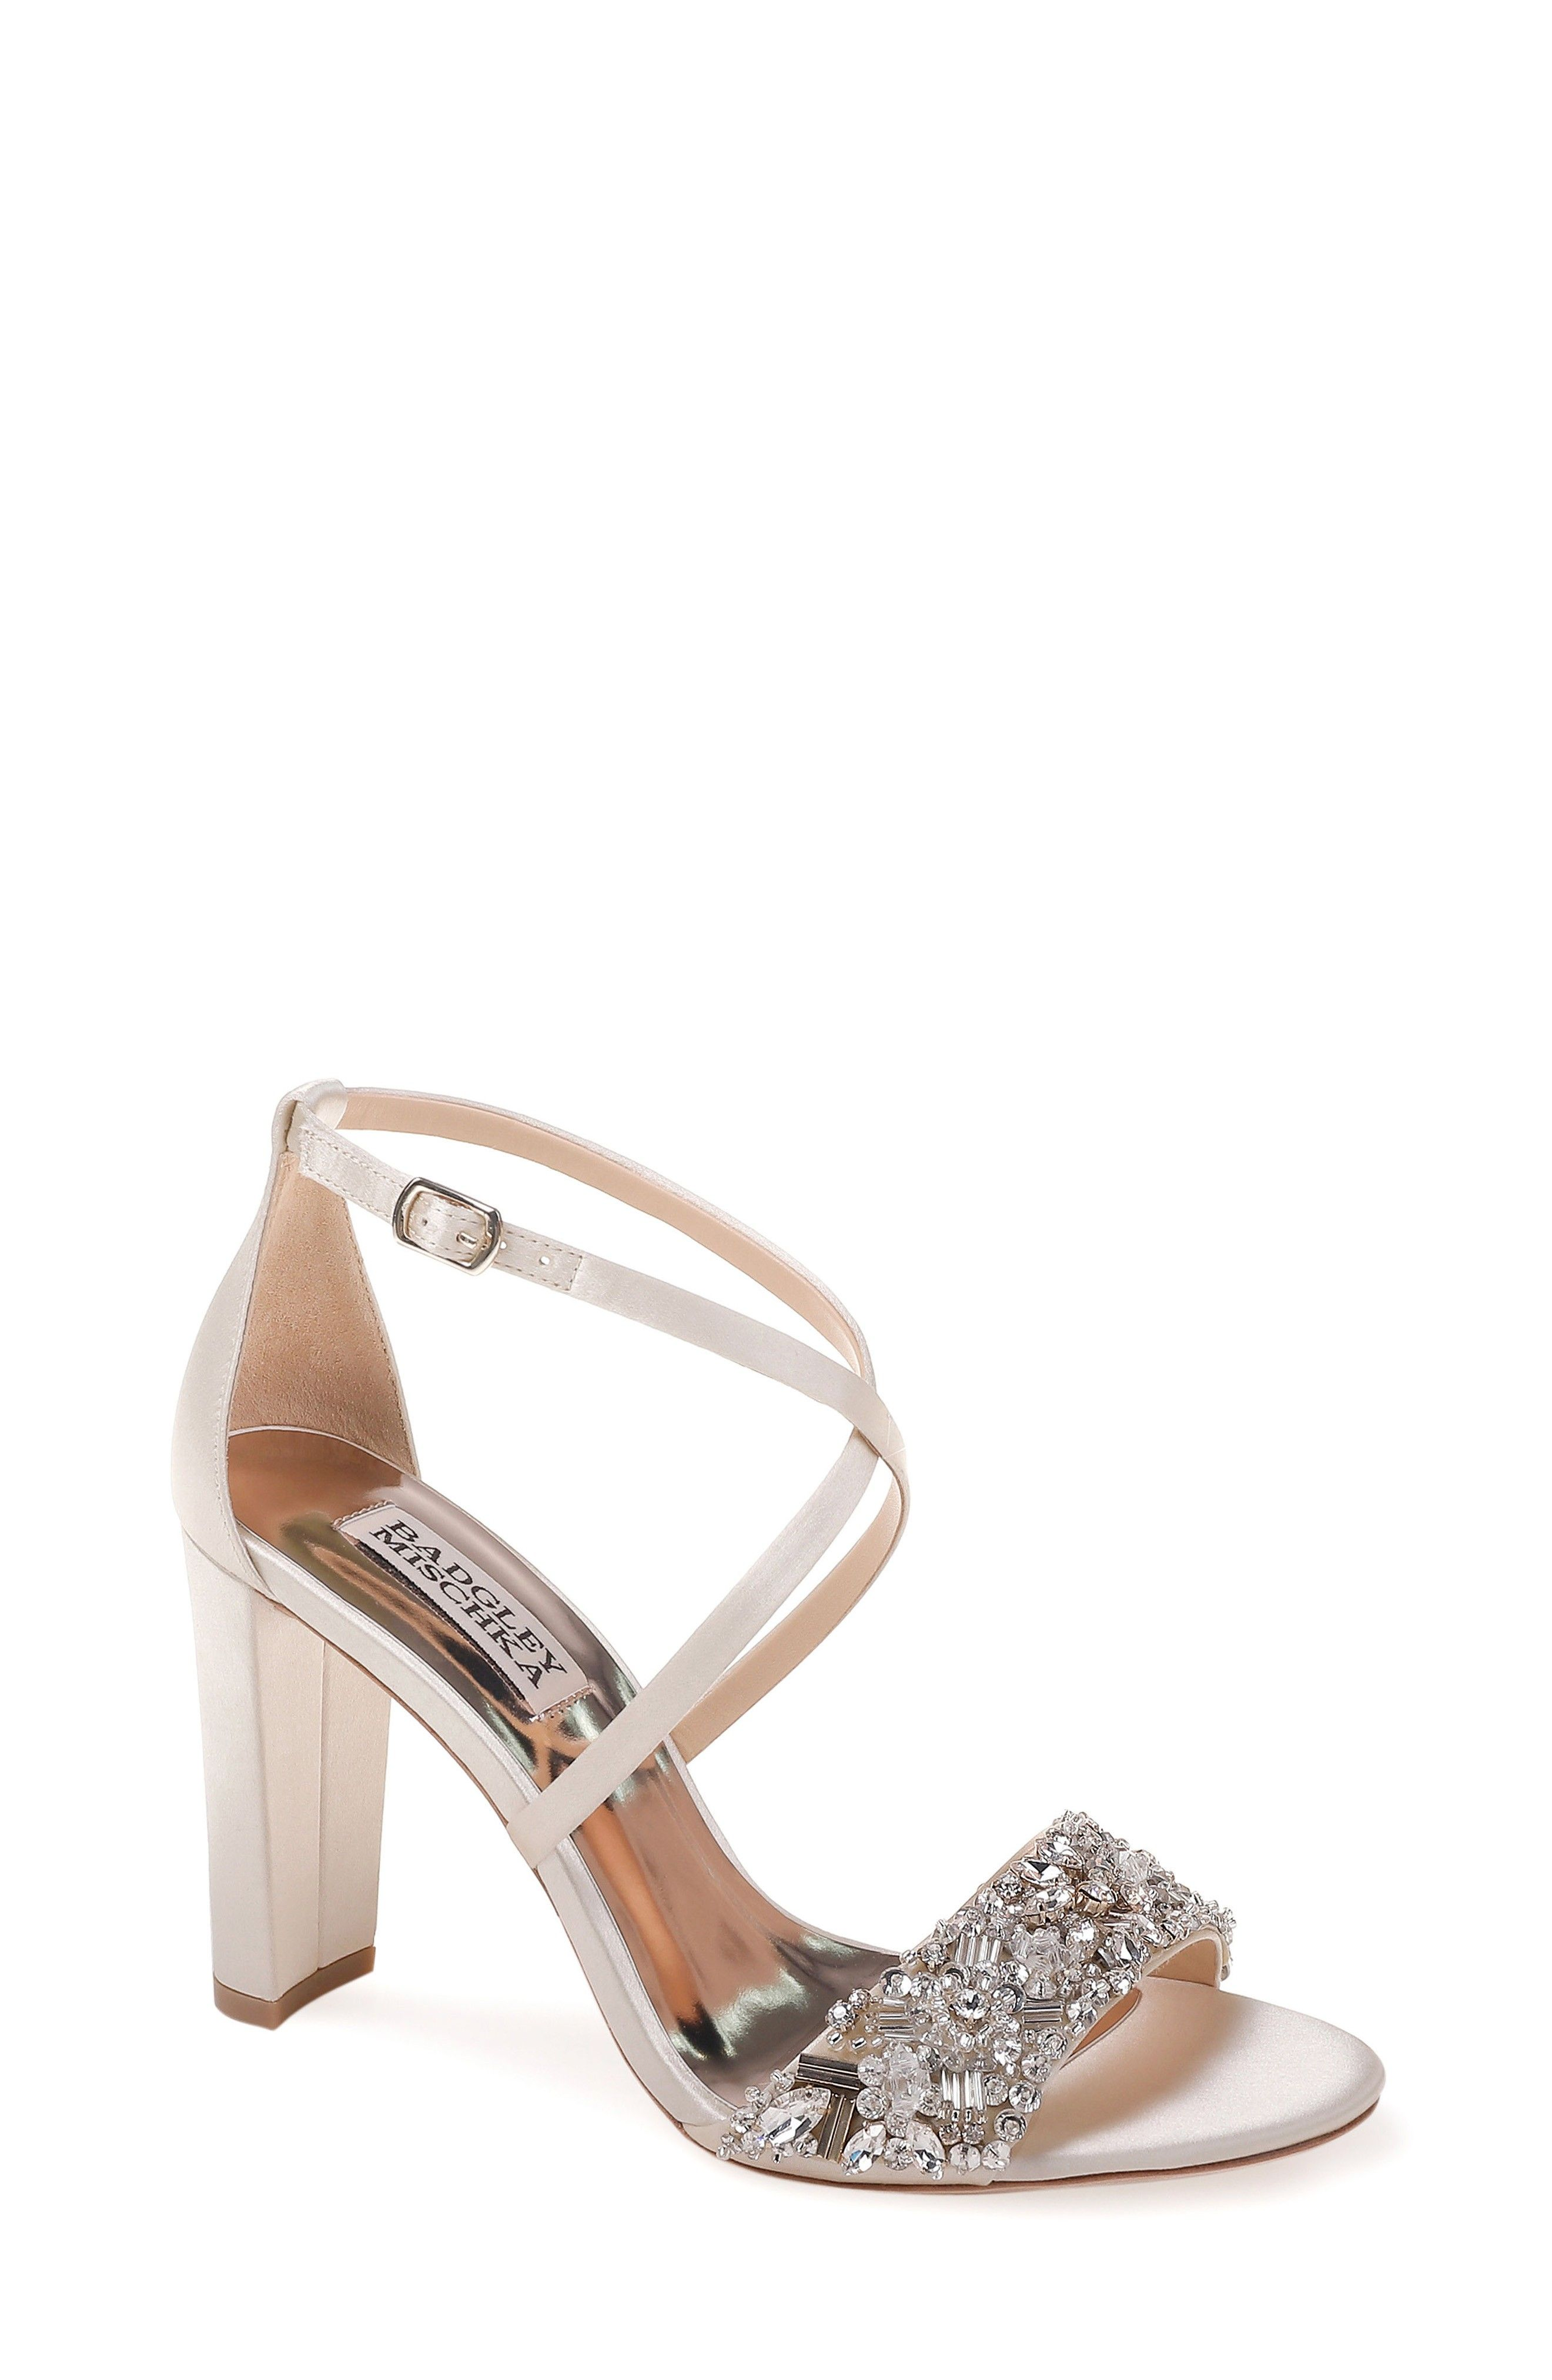 Block heel embellished wedding shoes ad weddingshoes